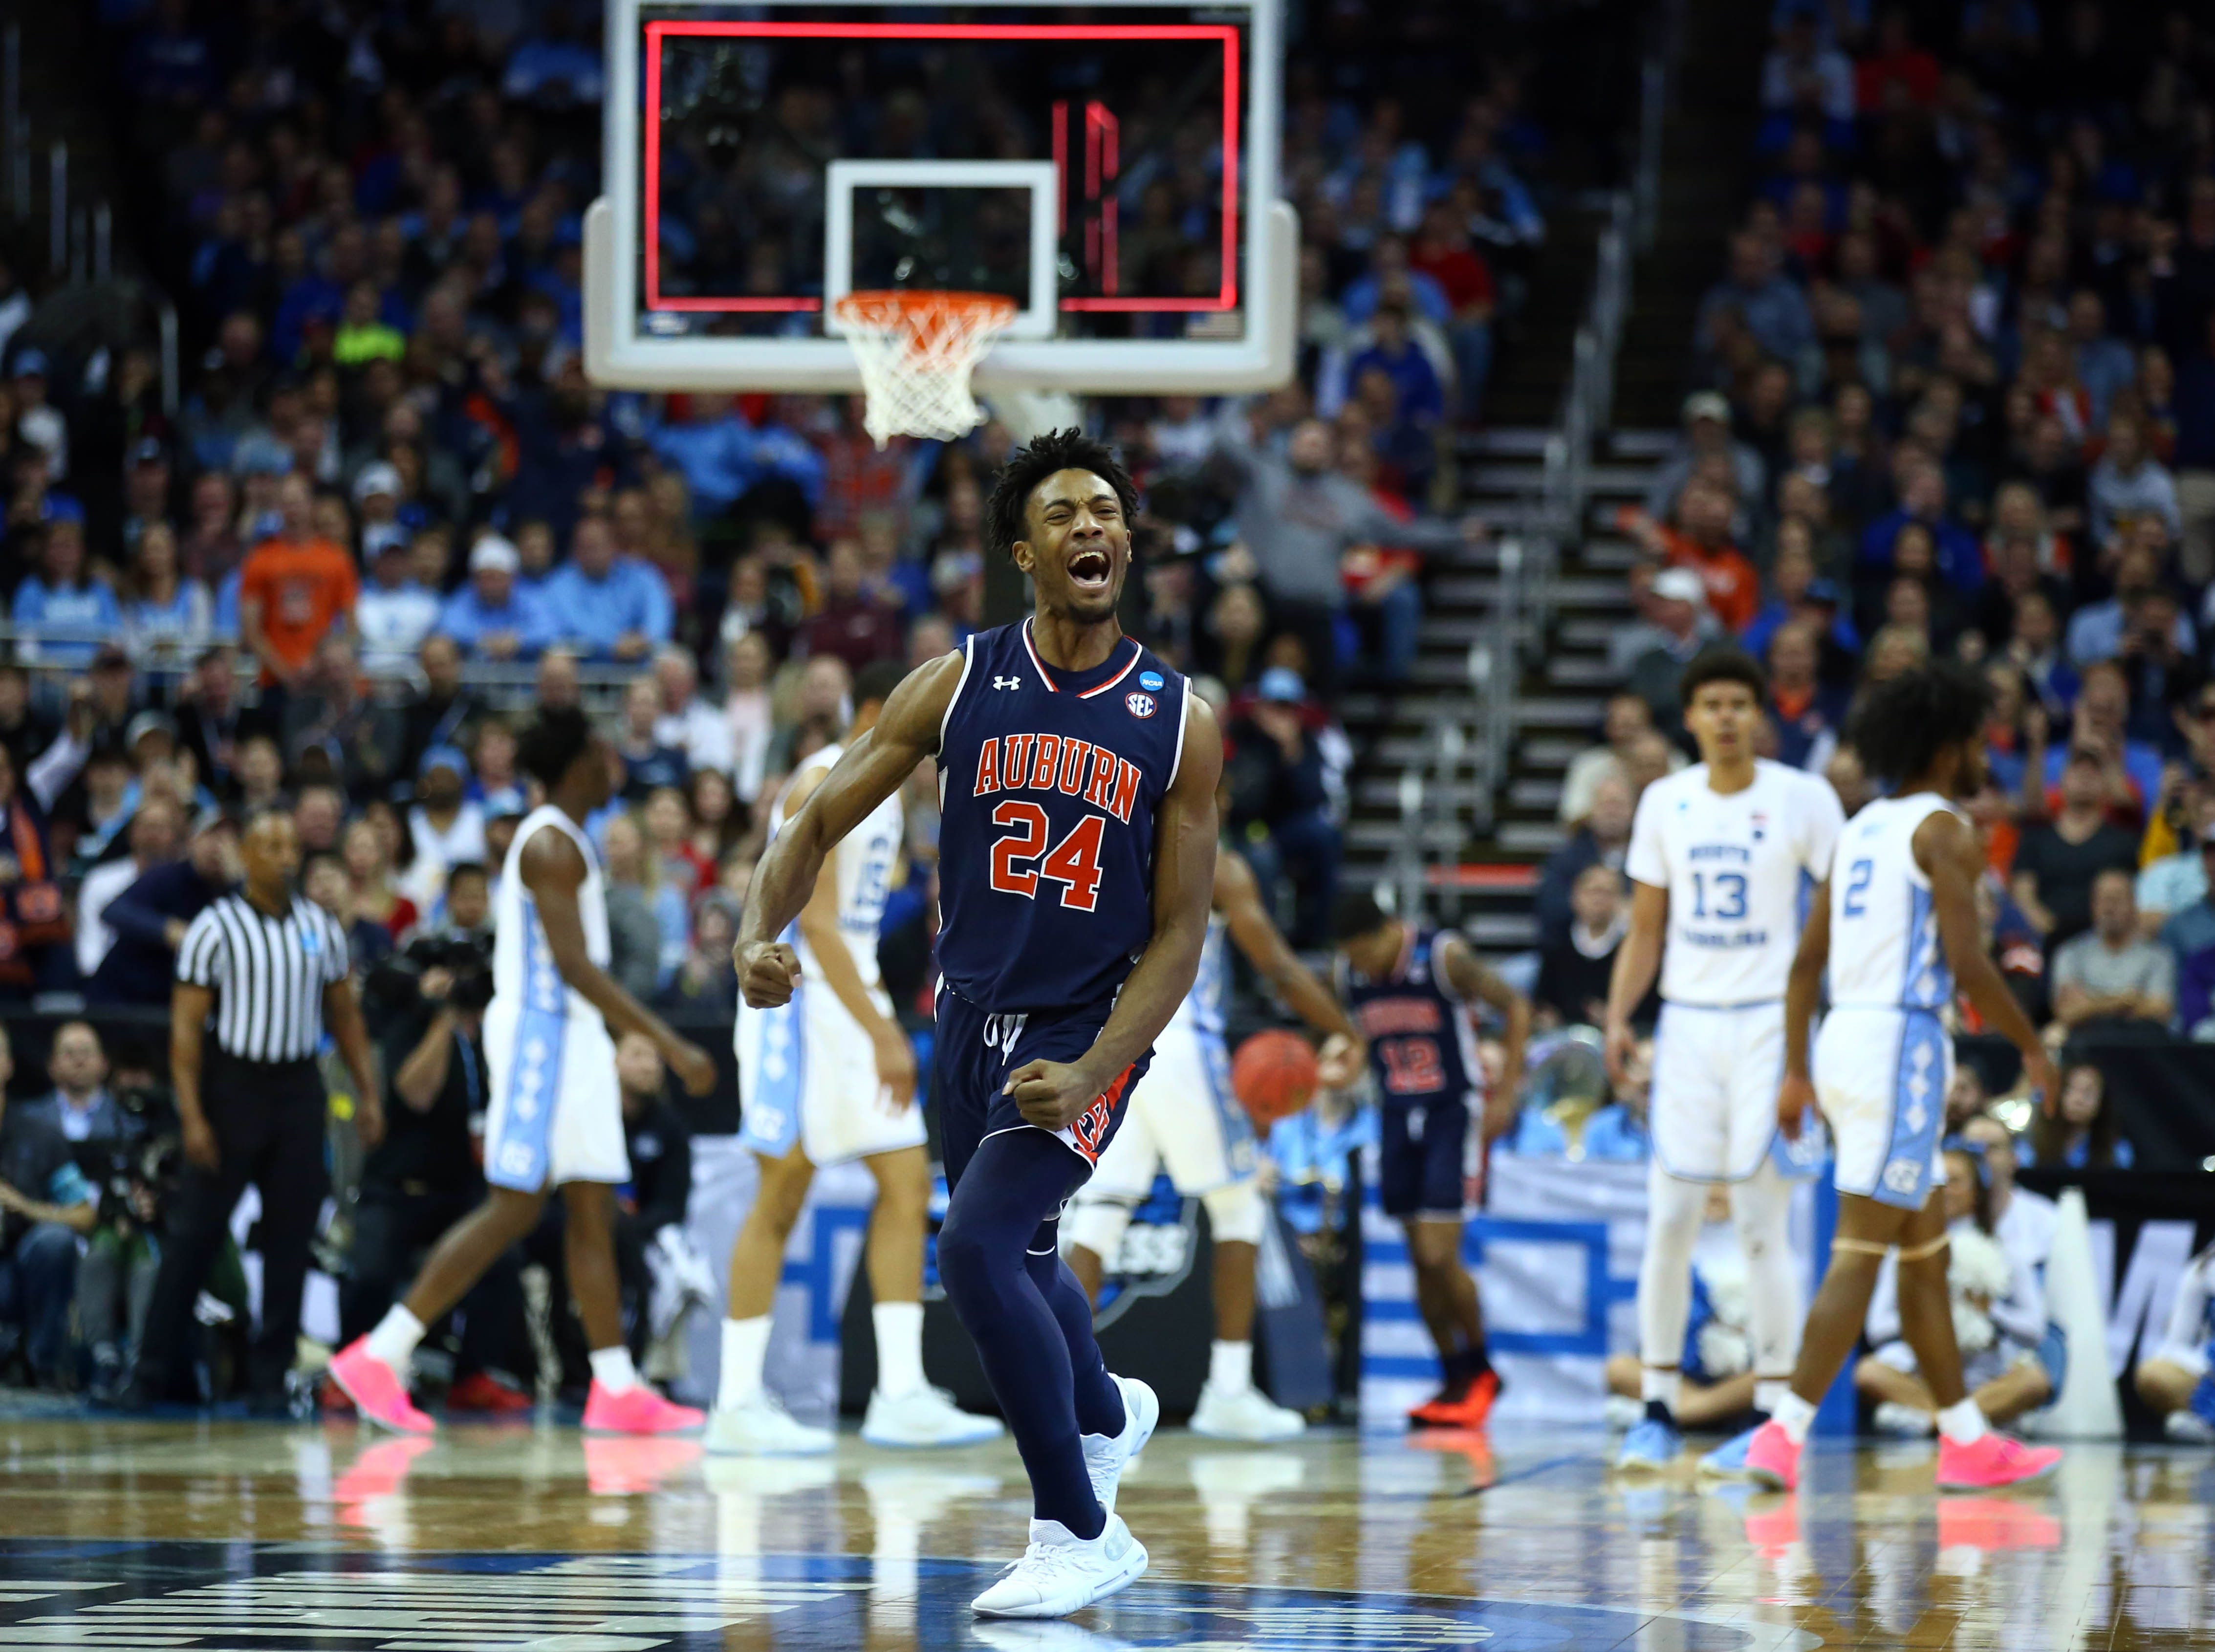 Sweet 16: Auburn forward Anfernee McLemore celebrates after a Tigers basket at the halftime buzzer vs. North Carolina.